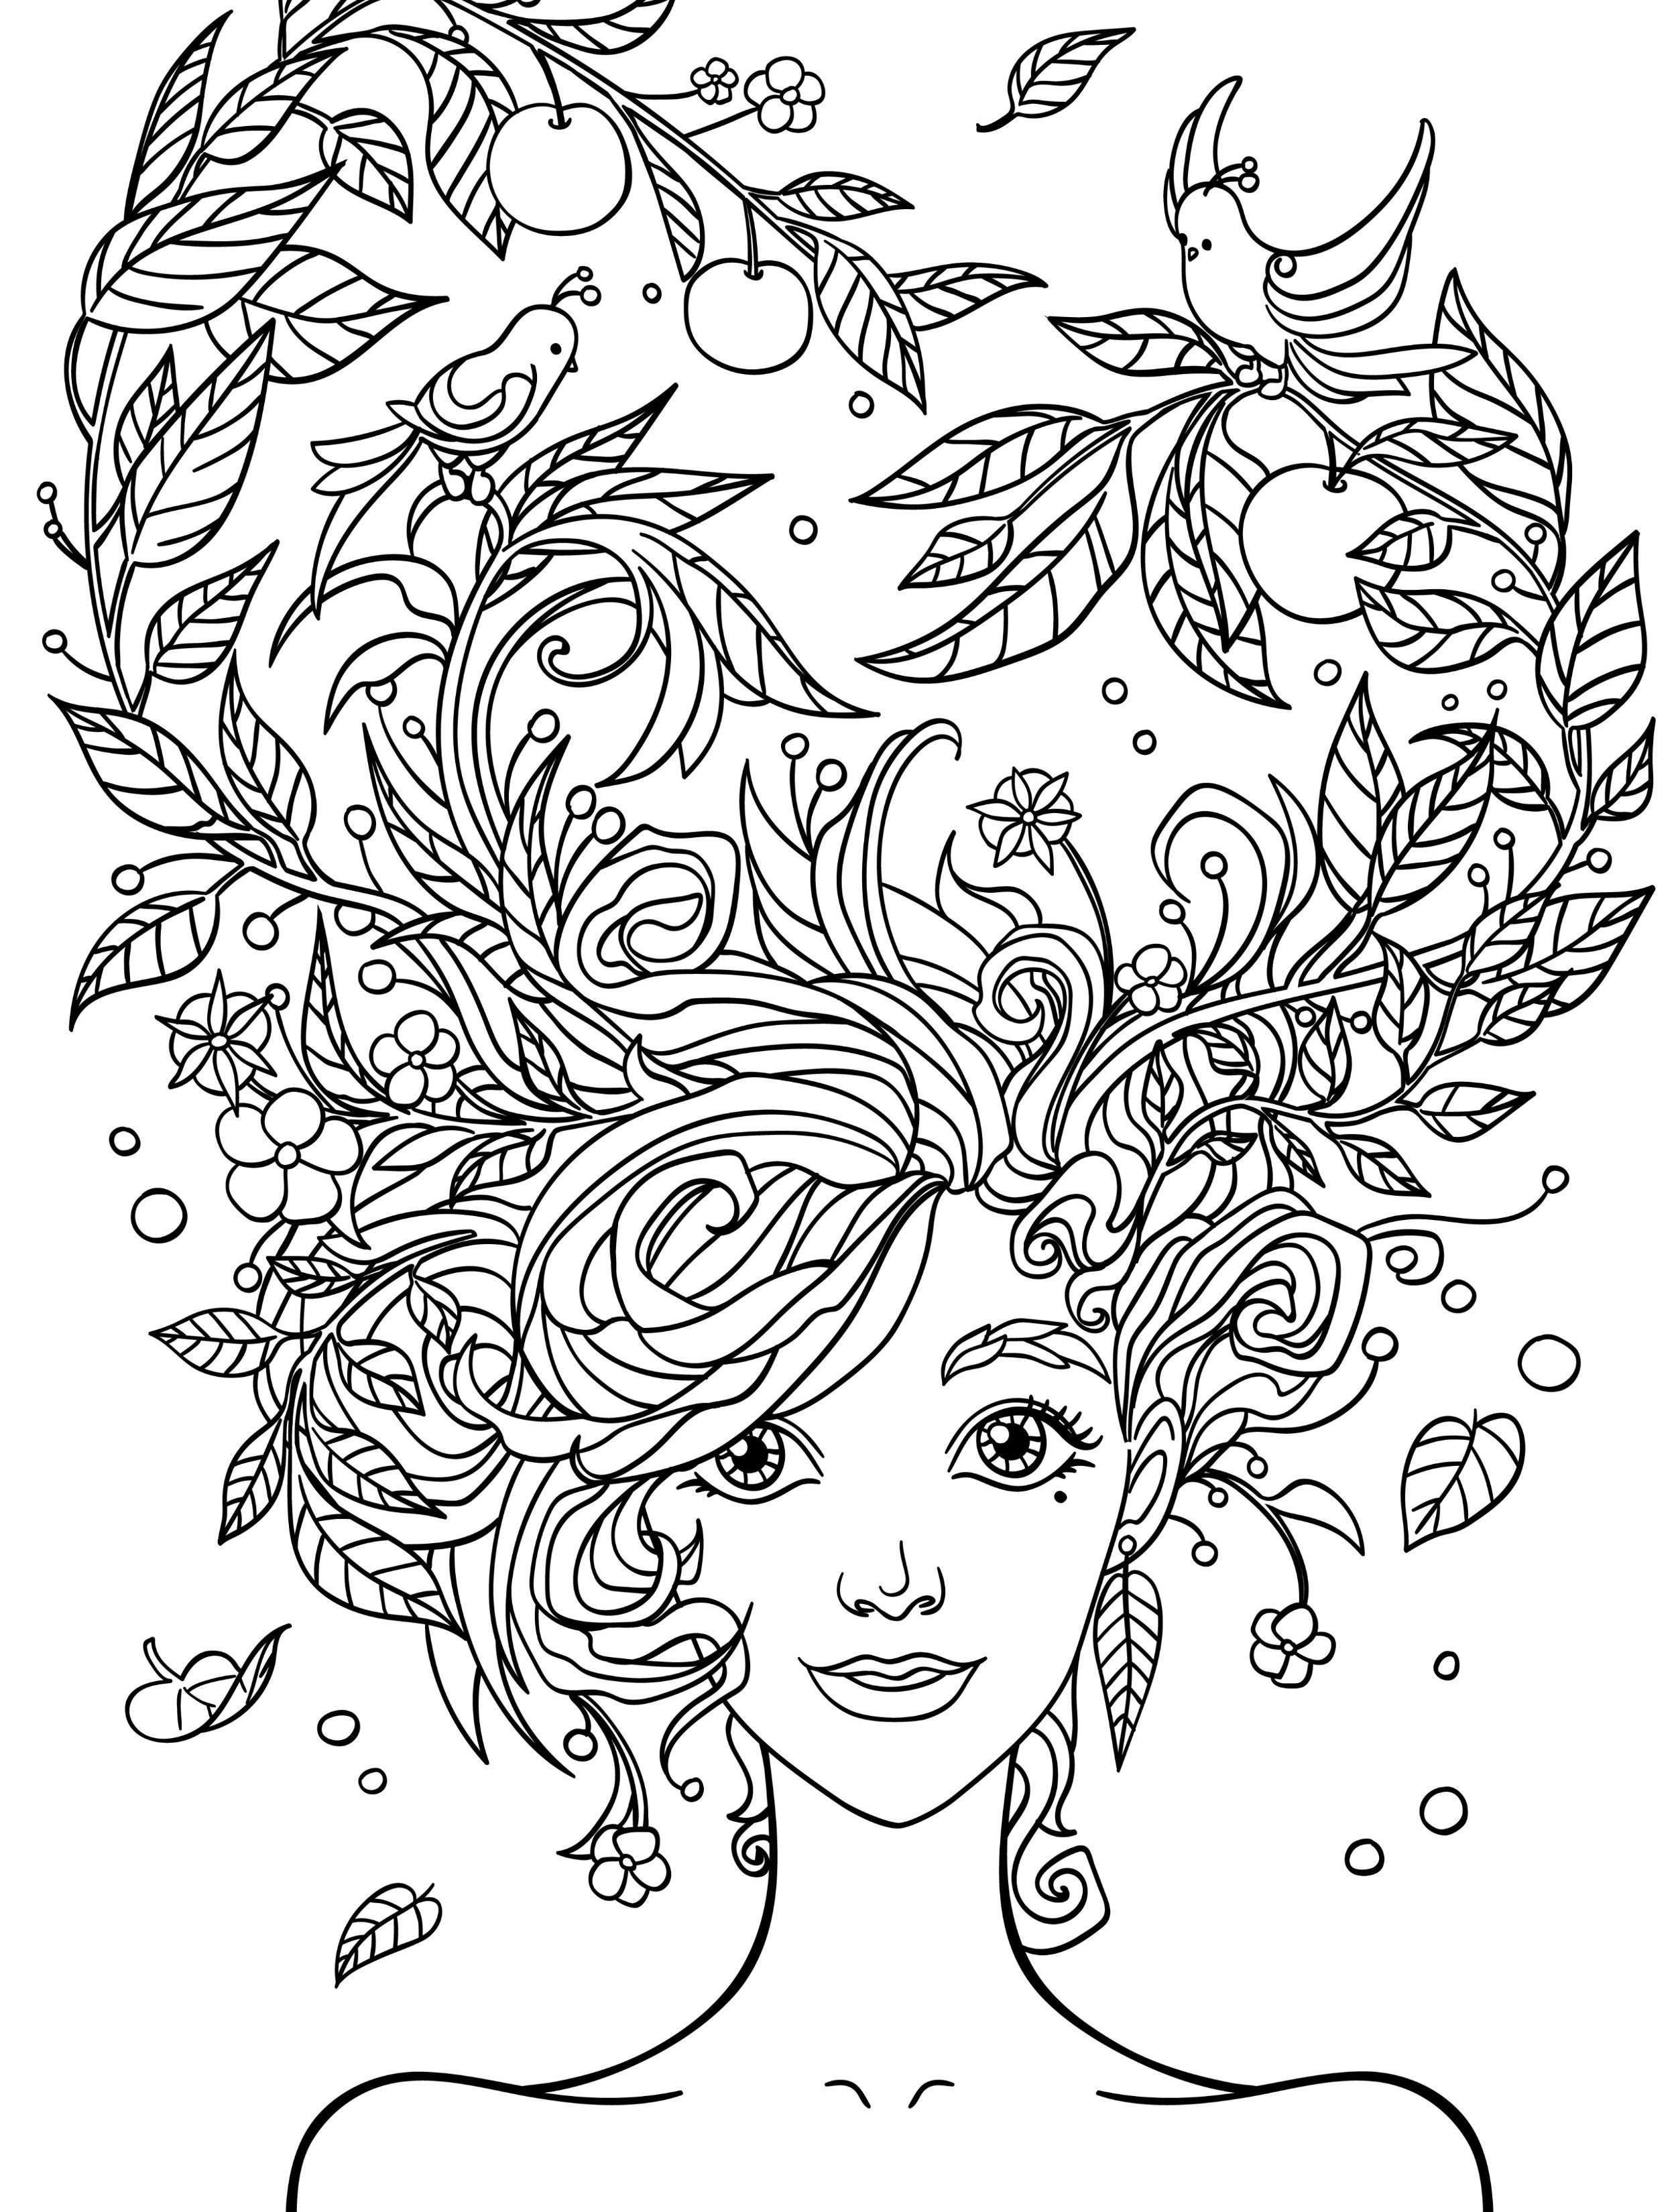 10 Crazy Hair Adult Coloring Pages | people coloring pages ...